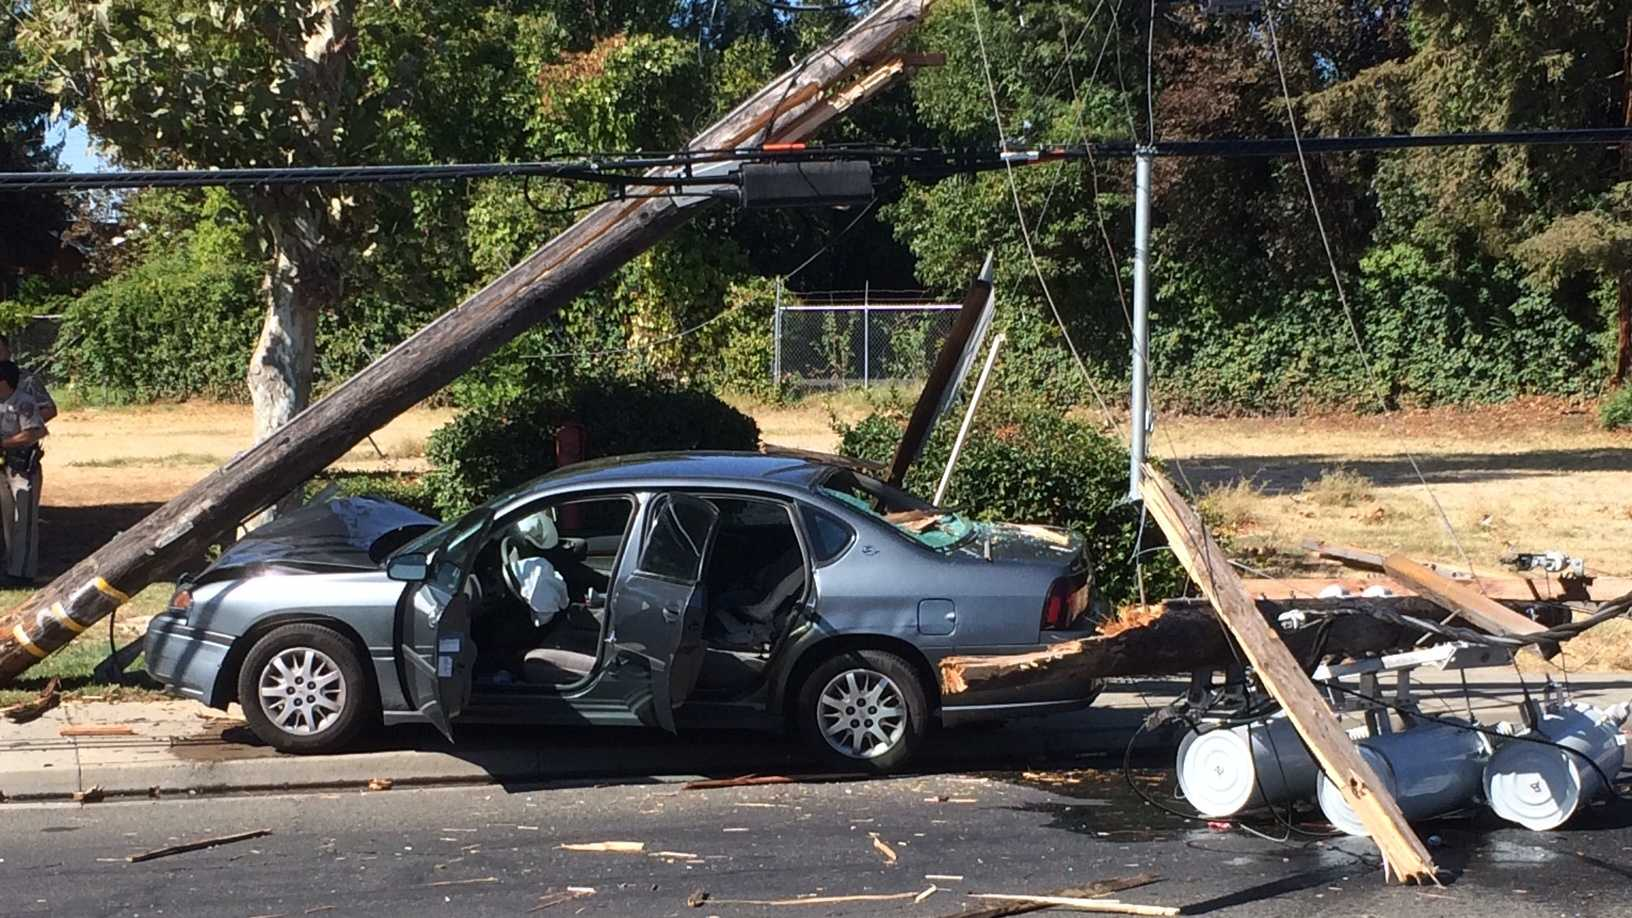 California Highway Patrol are investigating whether drugs or alcohol played a role in a single-vehicle crash in Arden on Friday, Oct. 2, 2015. CHP said the driver veered off the road and hit the power pole.